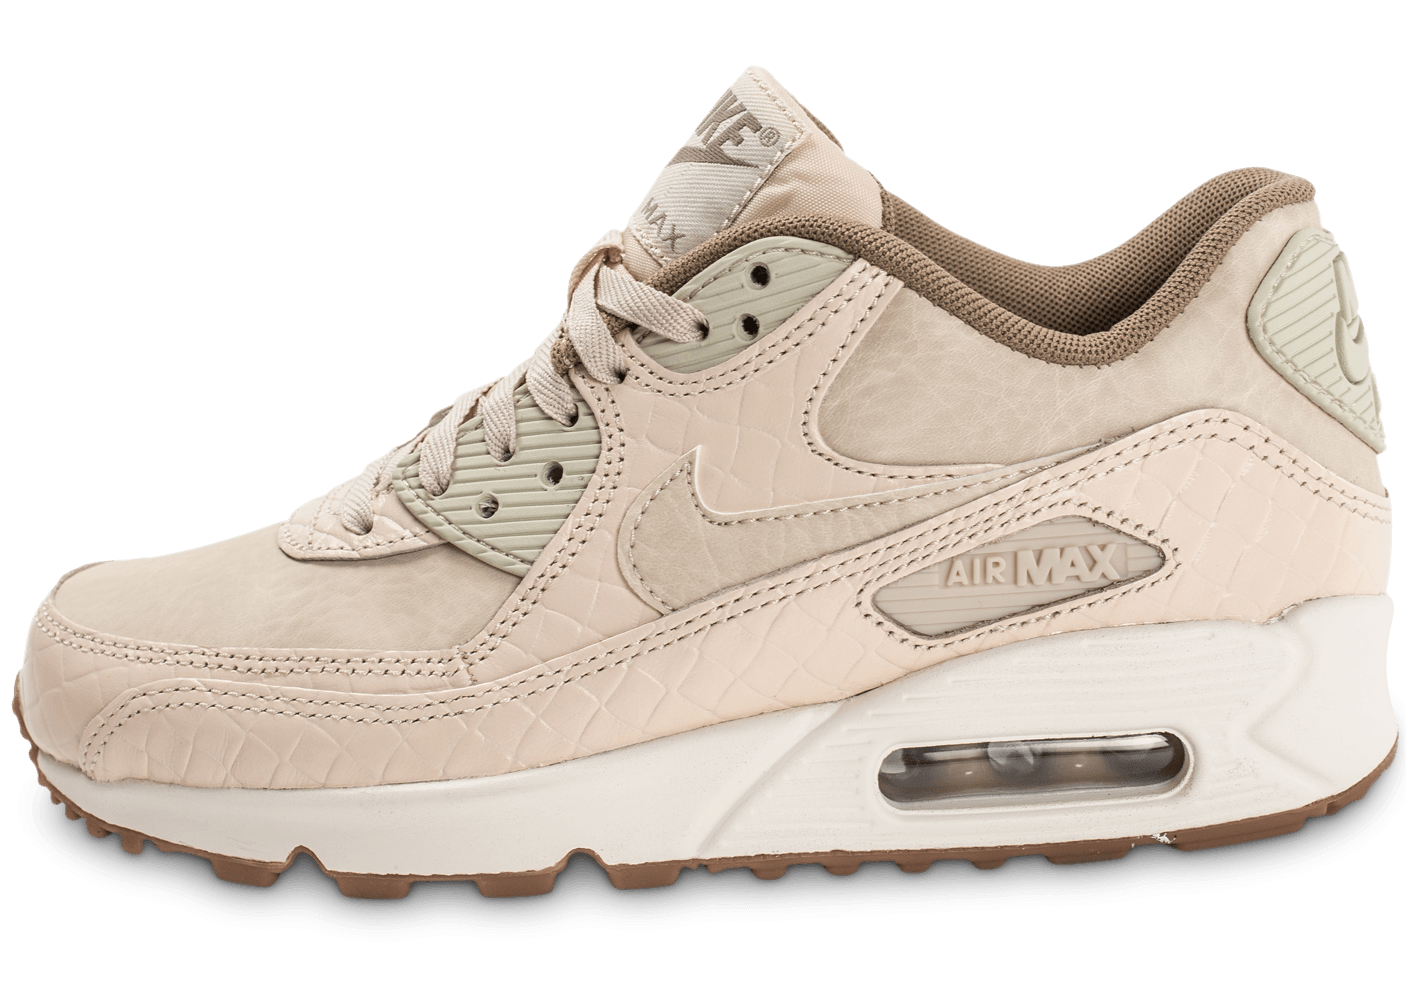 quality design 58ff0 6f3e4 Off-White x Nike Air Max 90 Desert Ore ... Chaussures Nike Air Max 90  Premium beige vue avant ... Nike Air Max 90 Essential Homme Nike Air Max 90  Essential ...